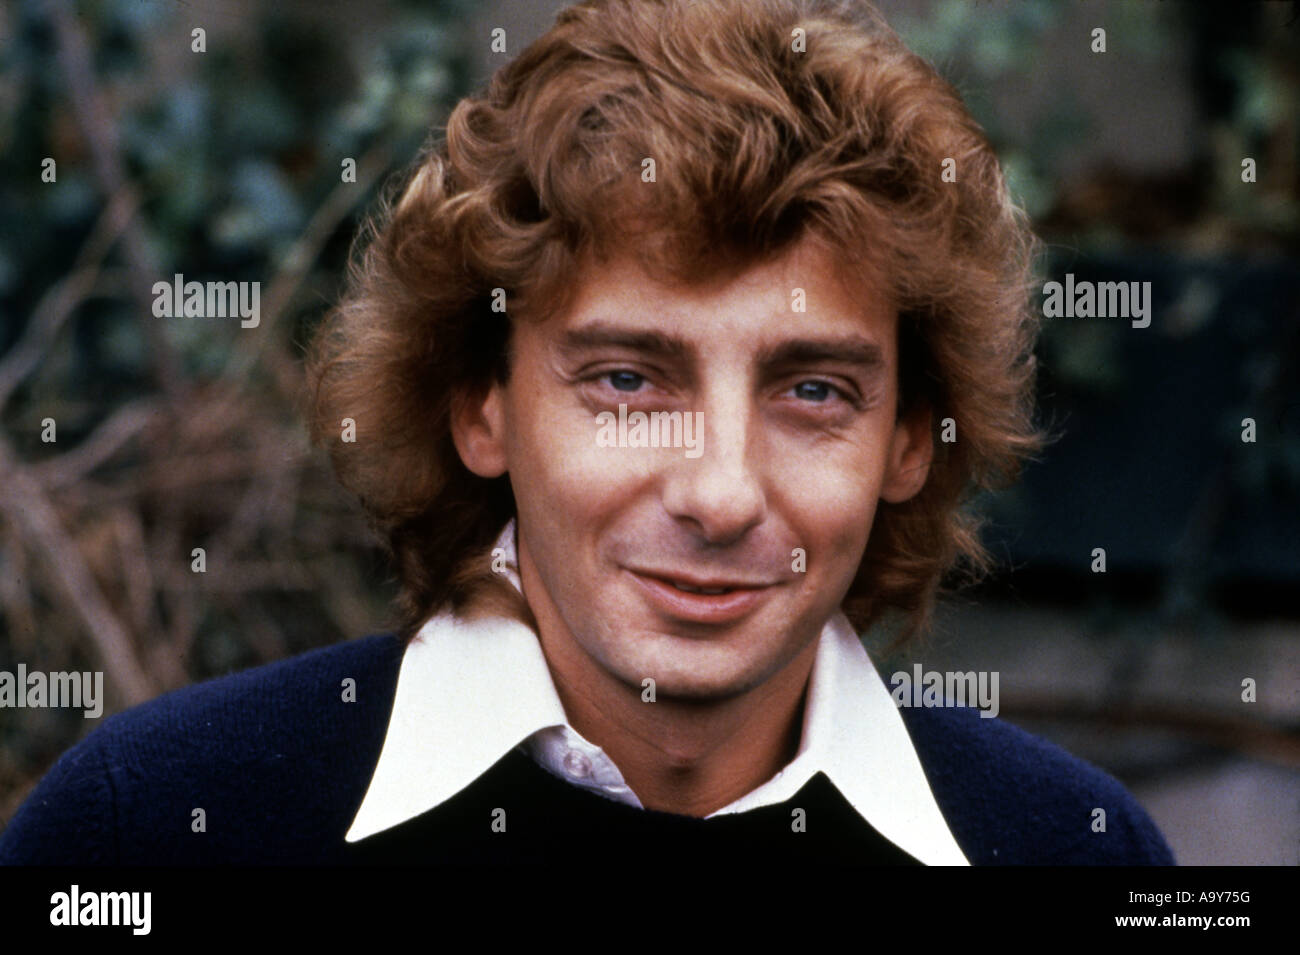 BARRY MANILOW - US singer - Stock Image